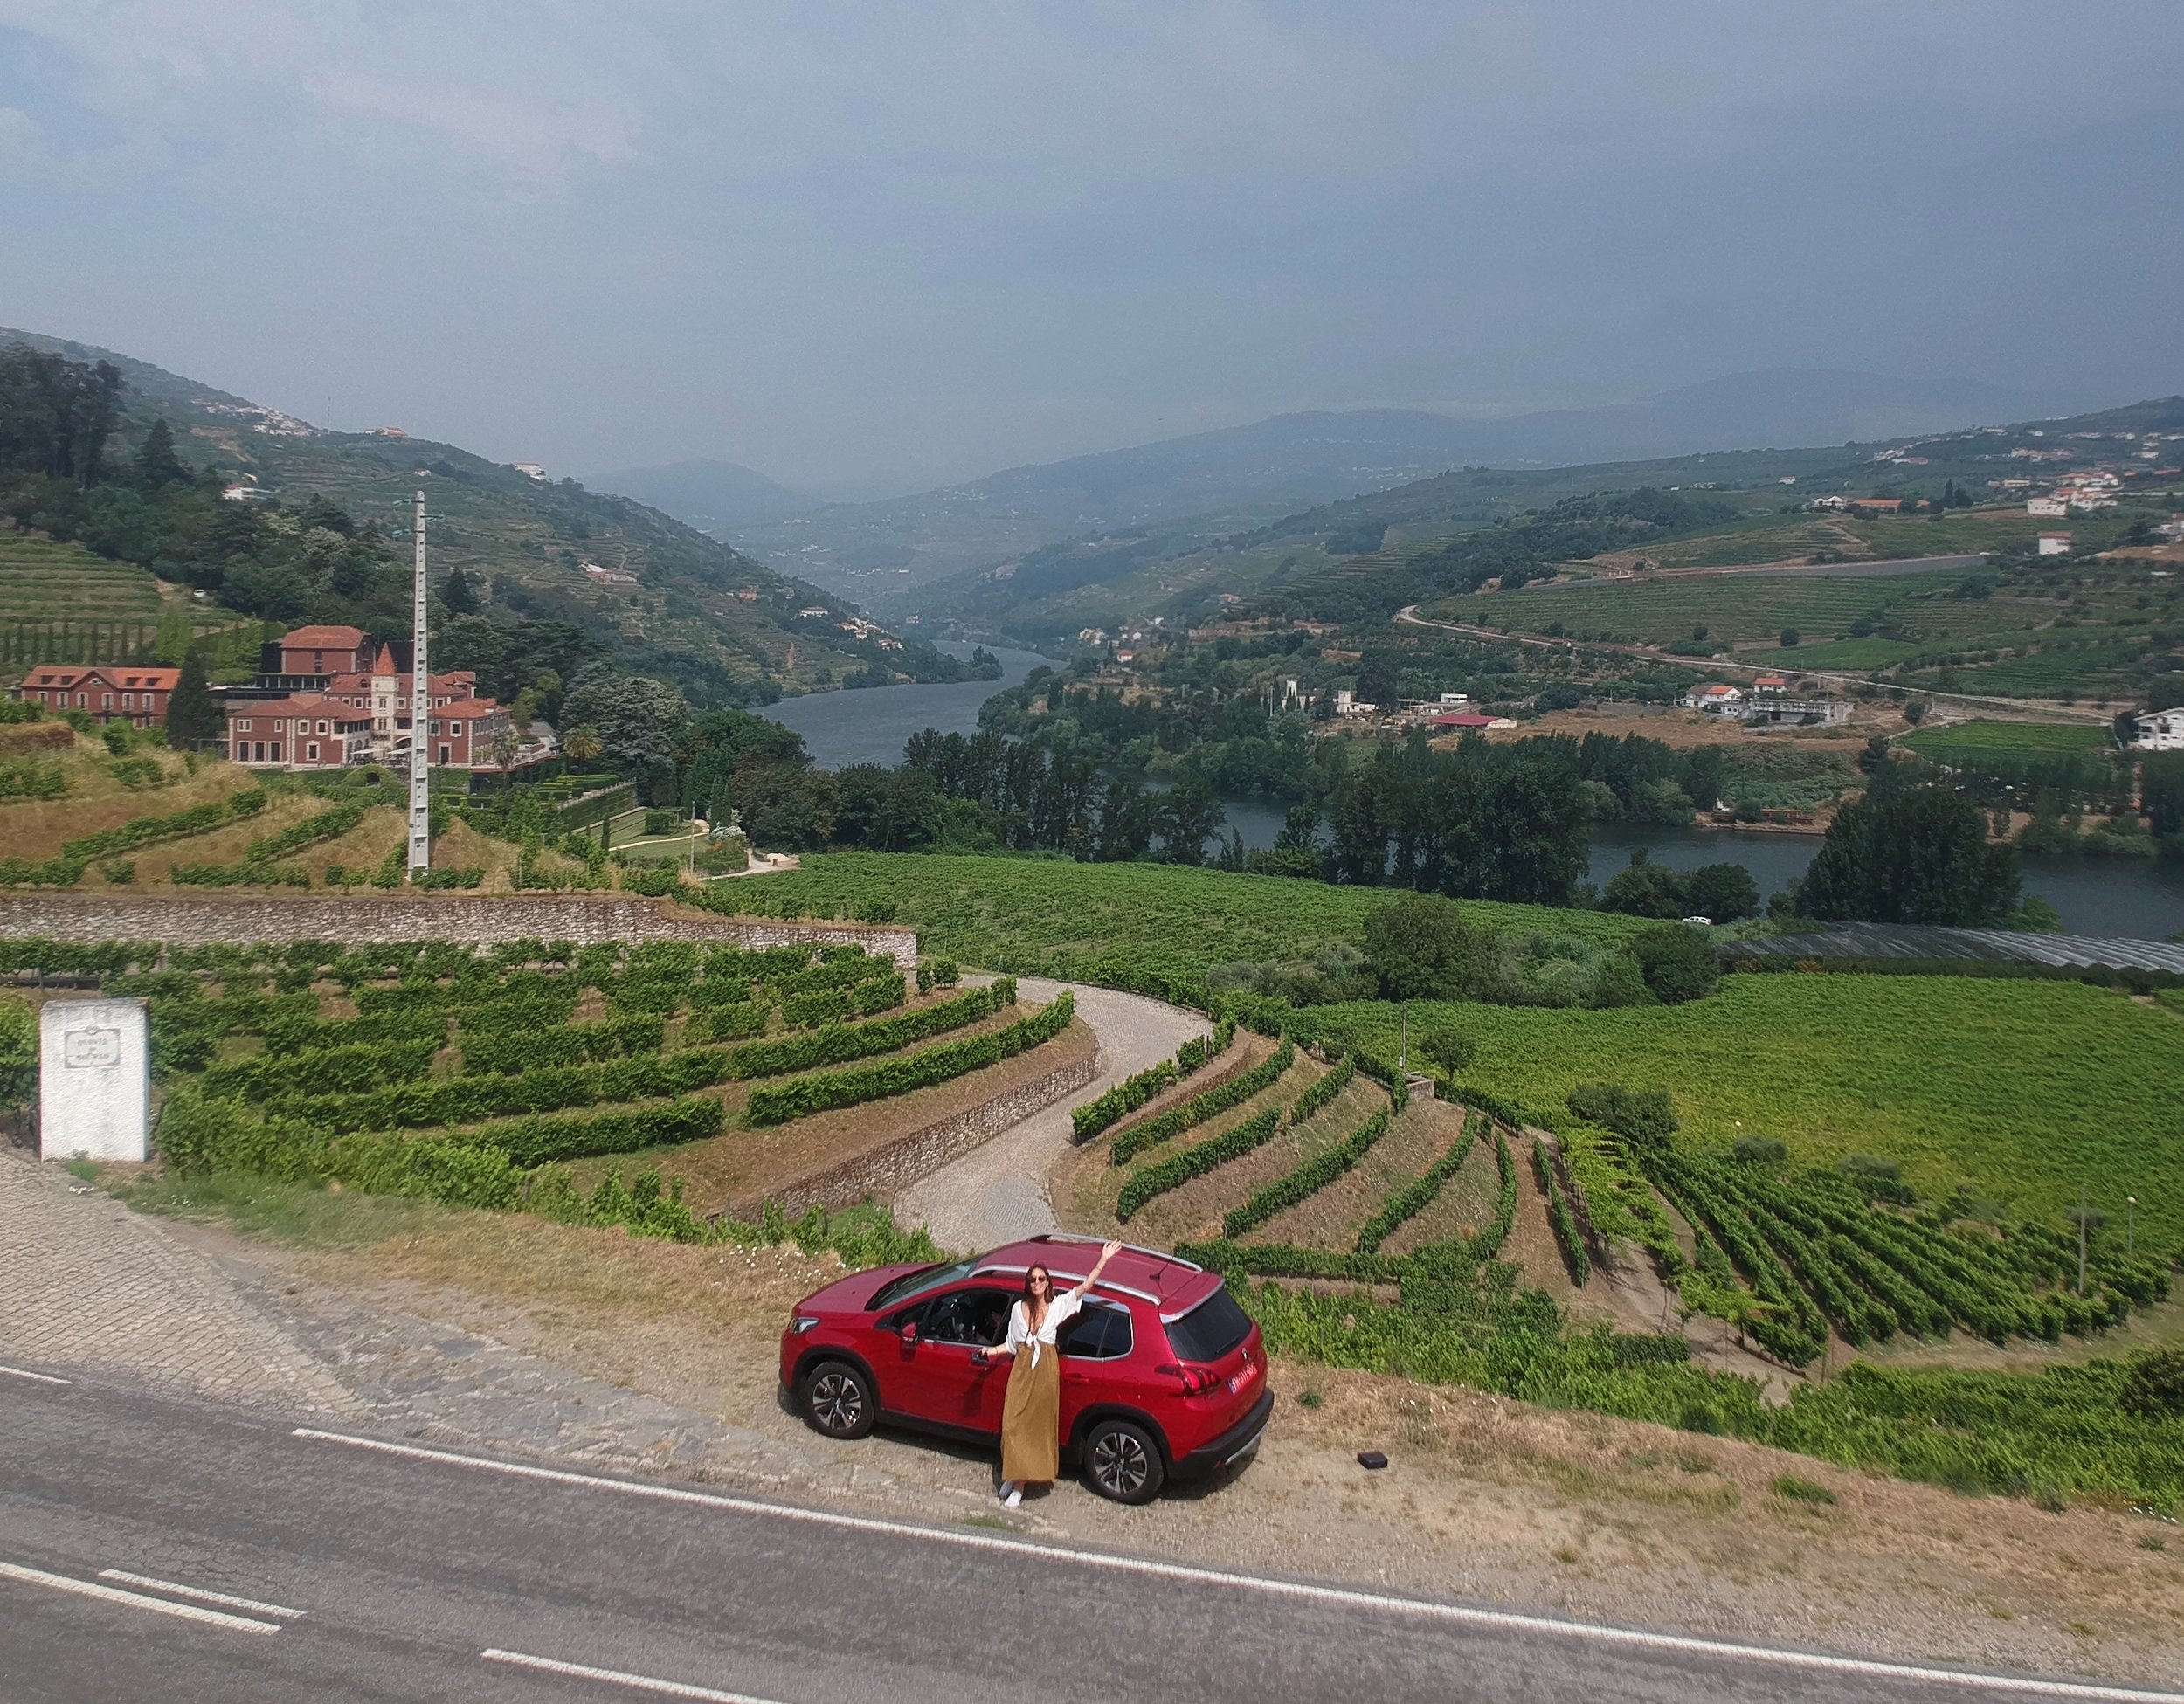 Going for a drive through the Douro Valley, Portugal's wine region, in my Peugeot from AutoFrance